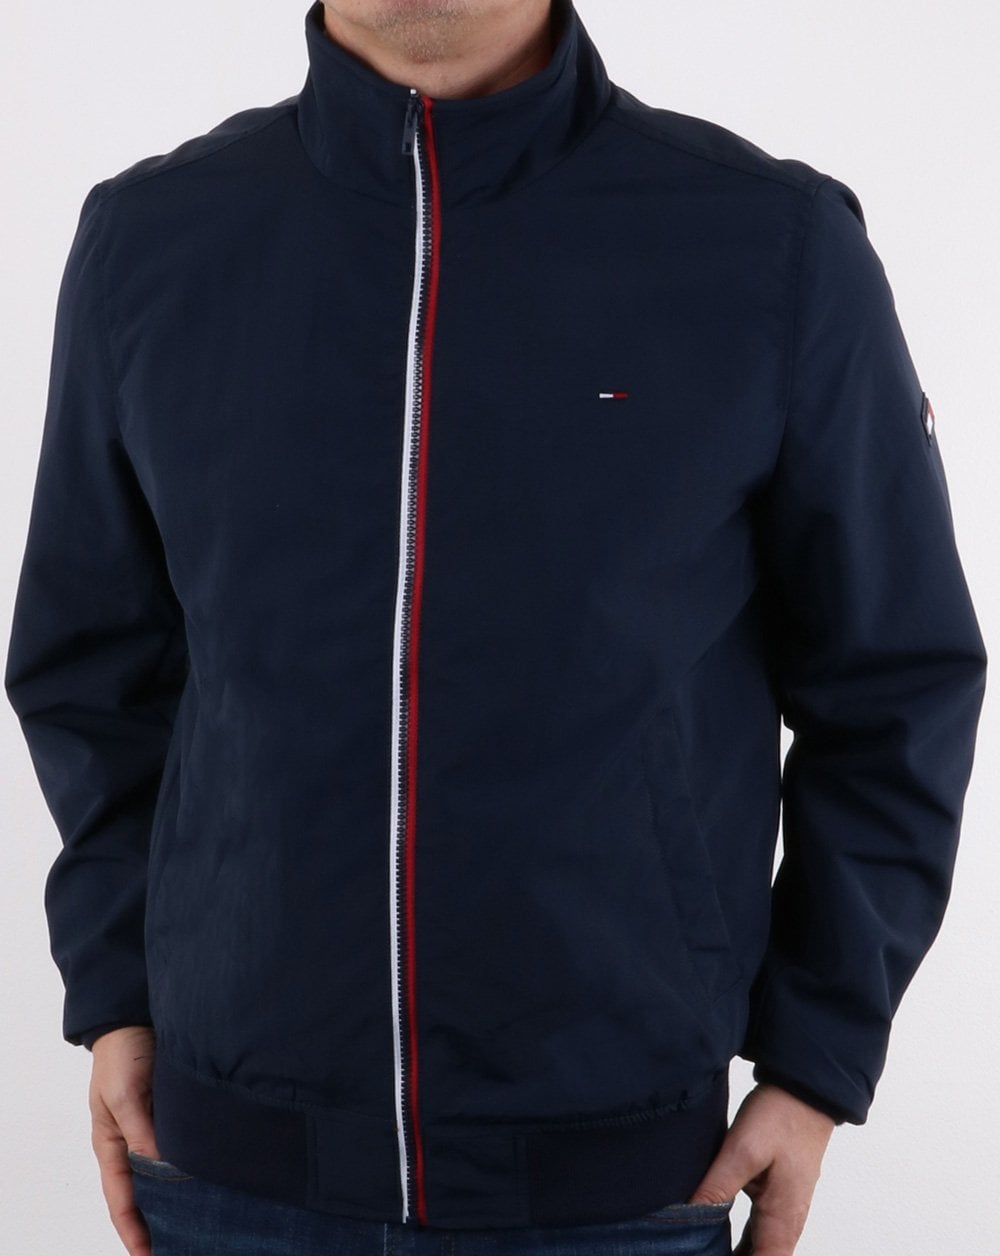 e61772a6 Tommy Hilfiger Casual Bomber Jacket Navy | 80s casual classics